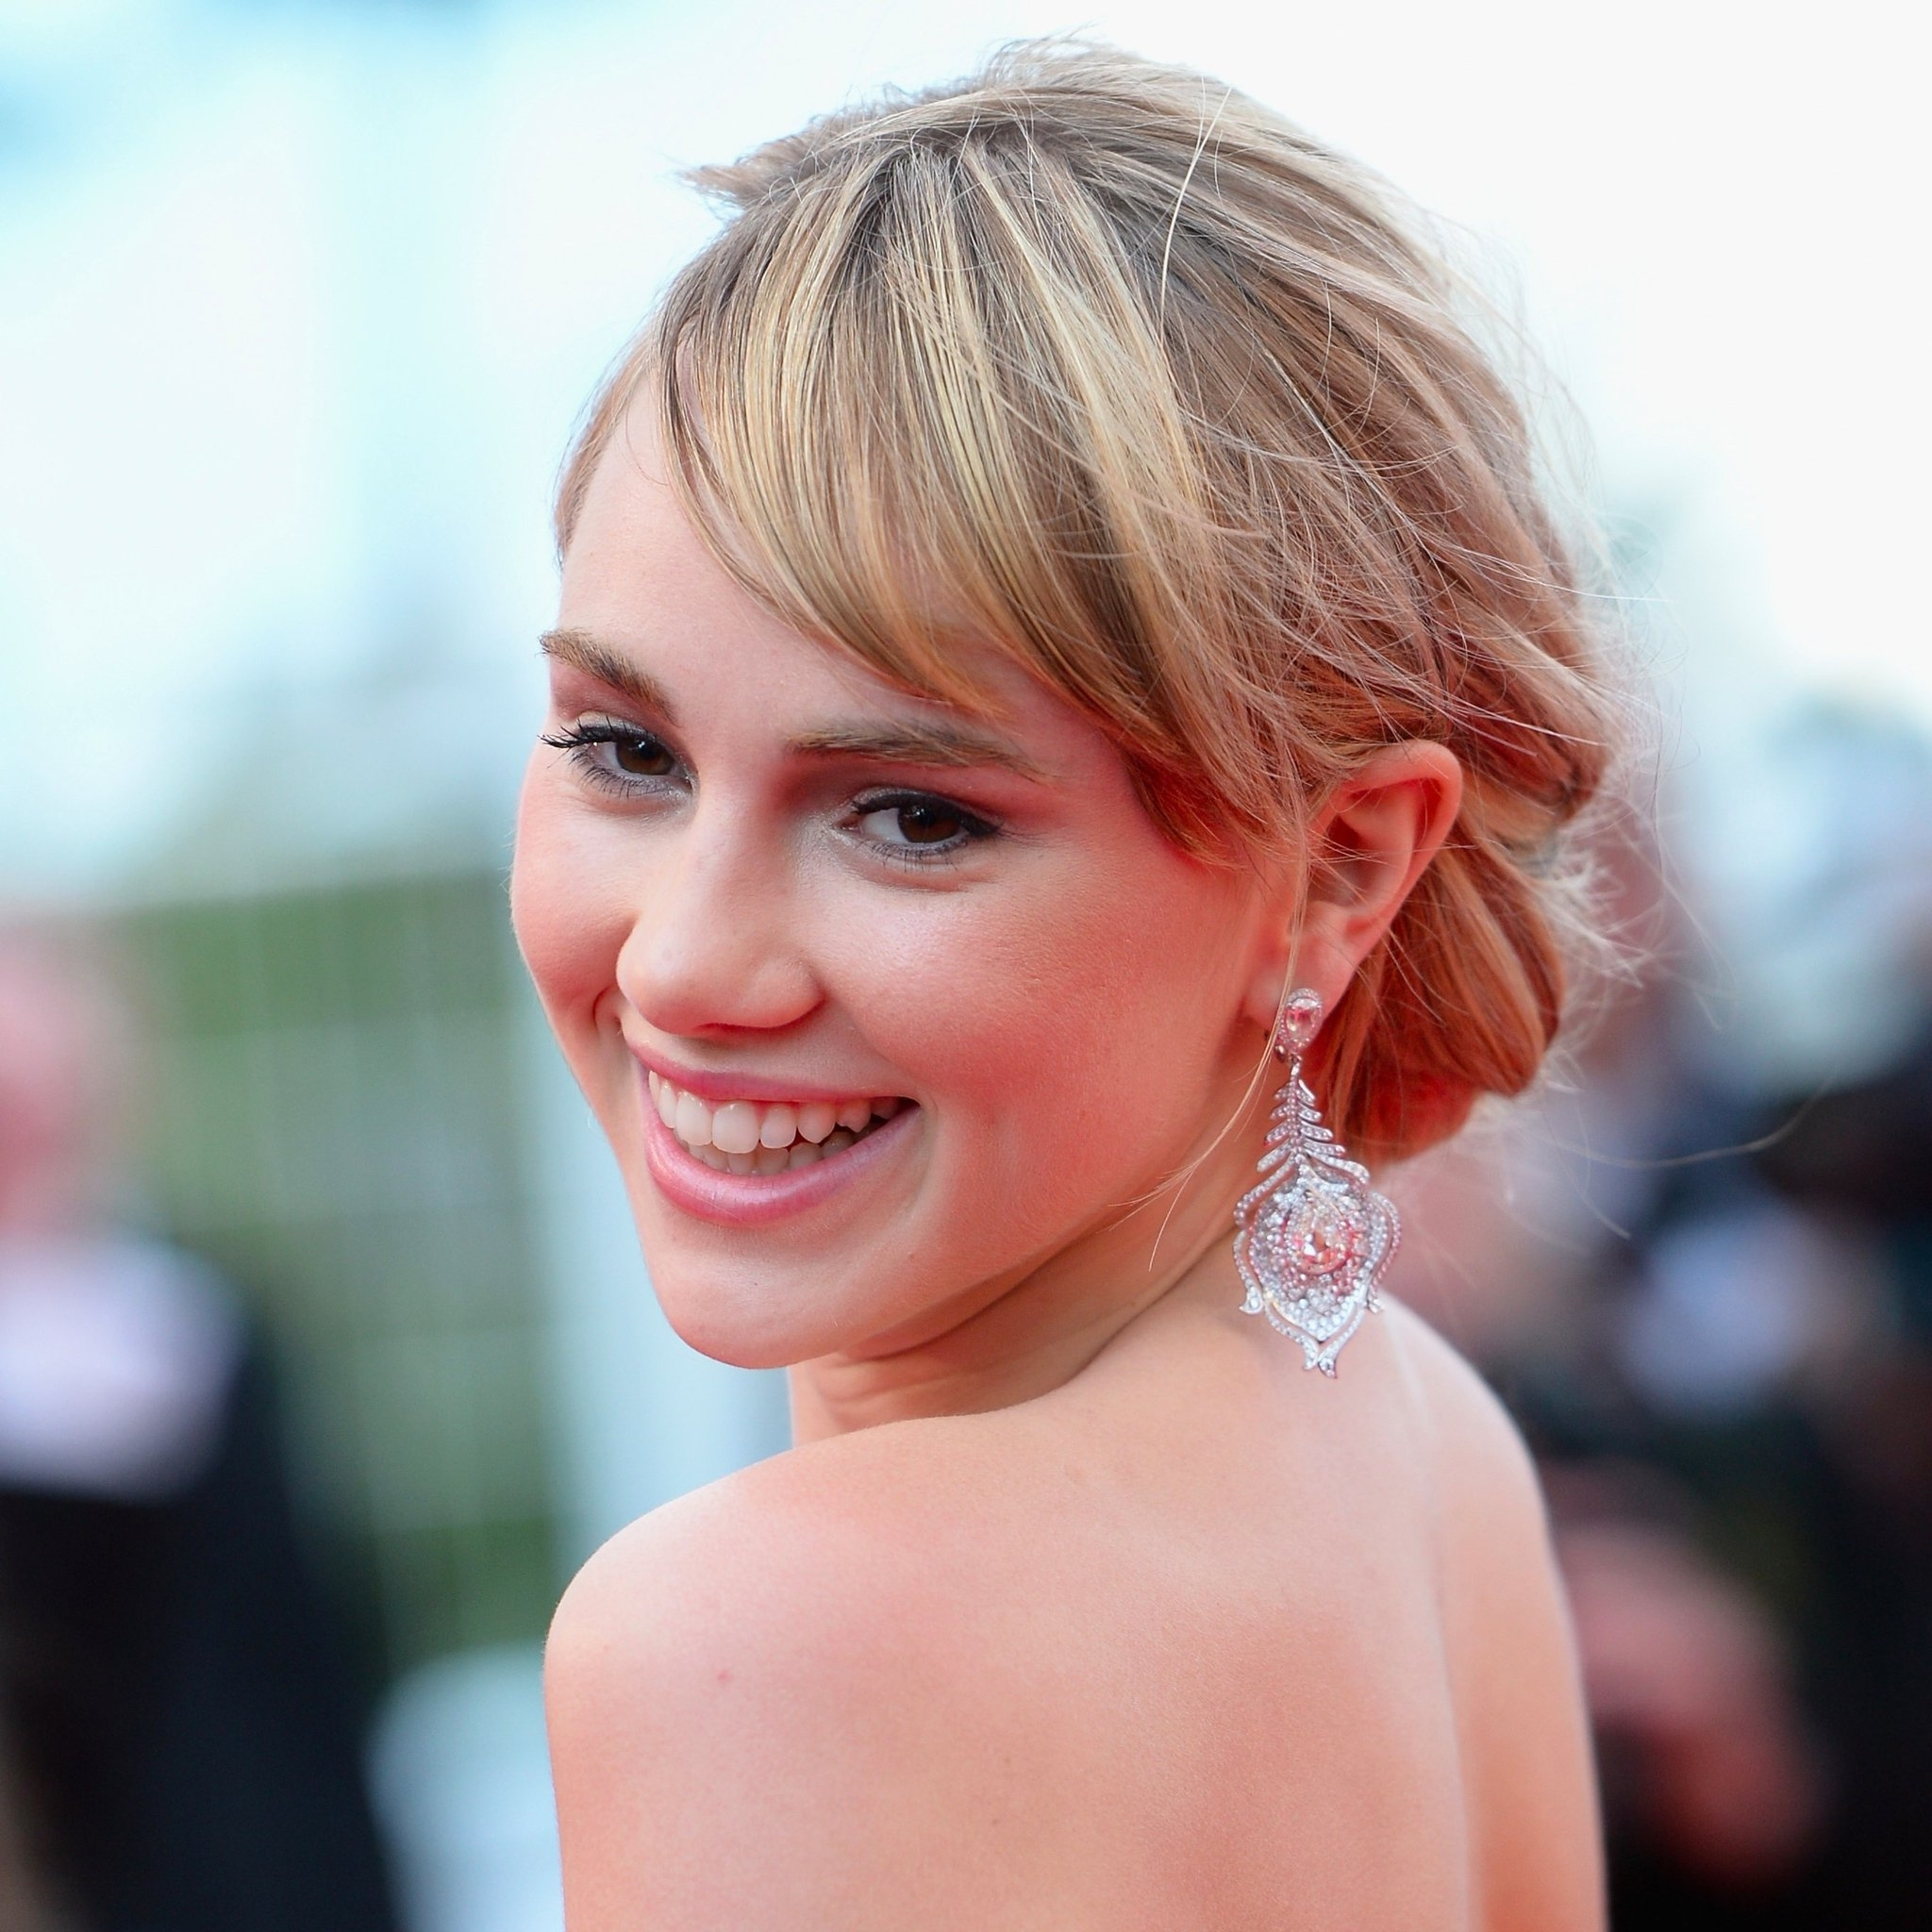 How To Wear Hair Up With A Fringe | Popsugar Beauty Uk Inside Updos For Long Hair With Bangs (View 12 of 15)